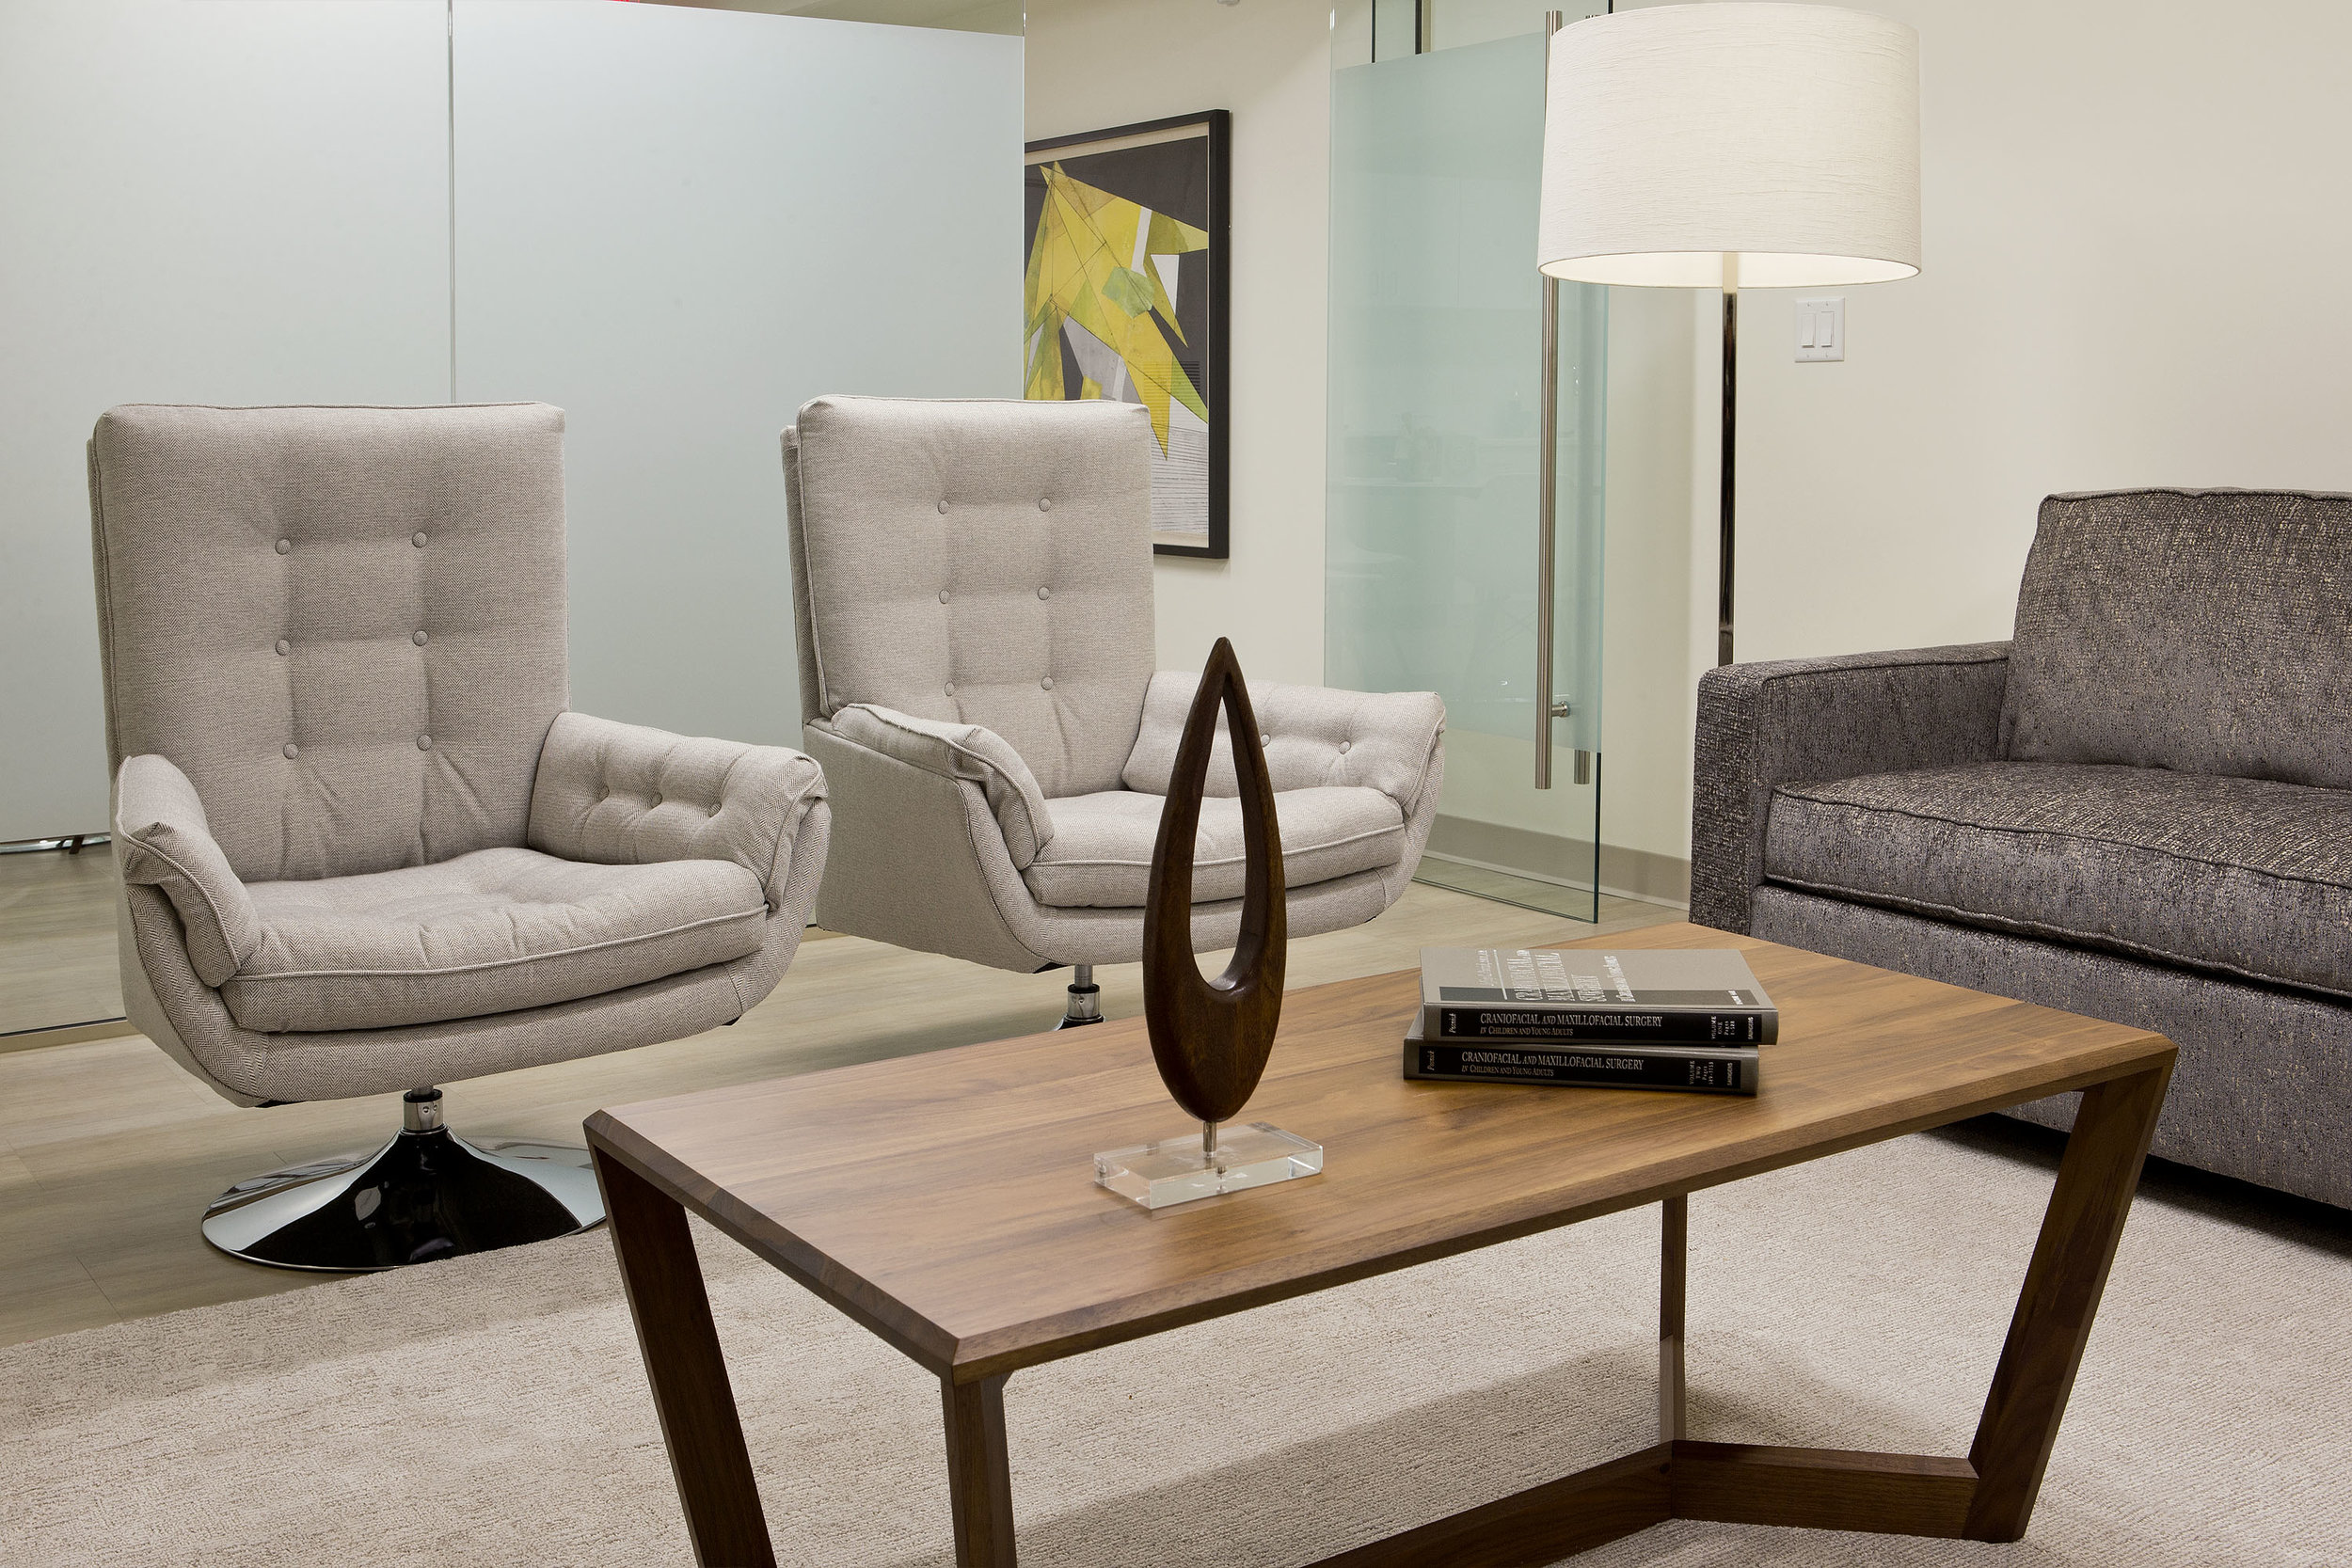 To provide the staff with a comfortable lounge area in between procedures, we grouped stylish and commercial grade seating around a walnut coffee table.